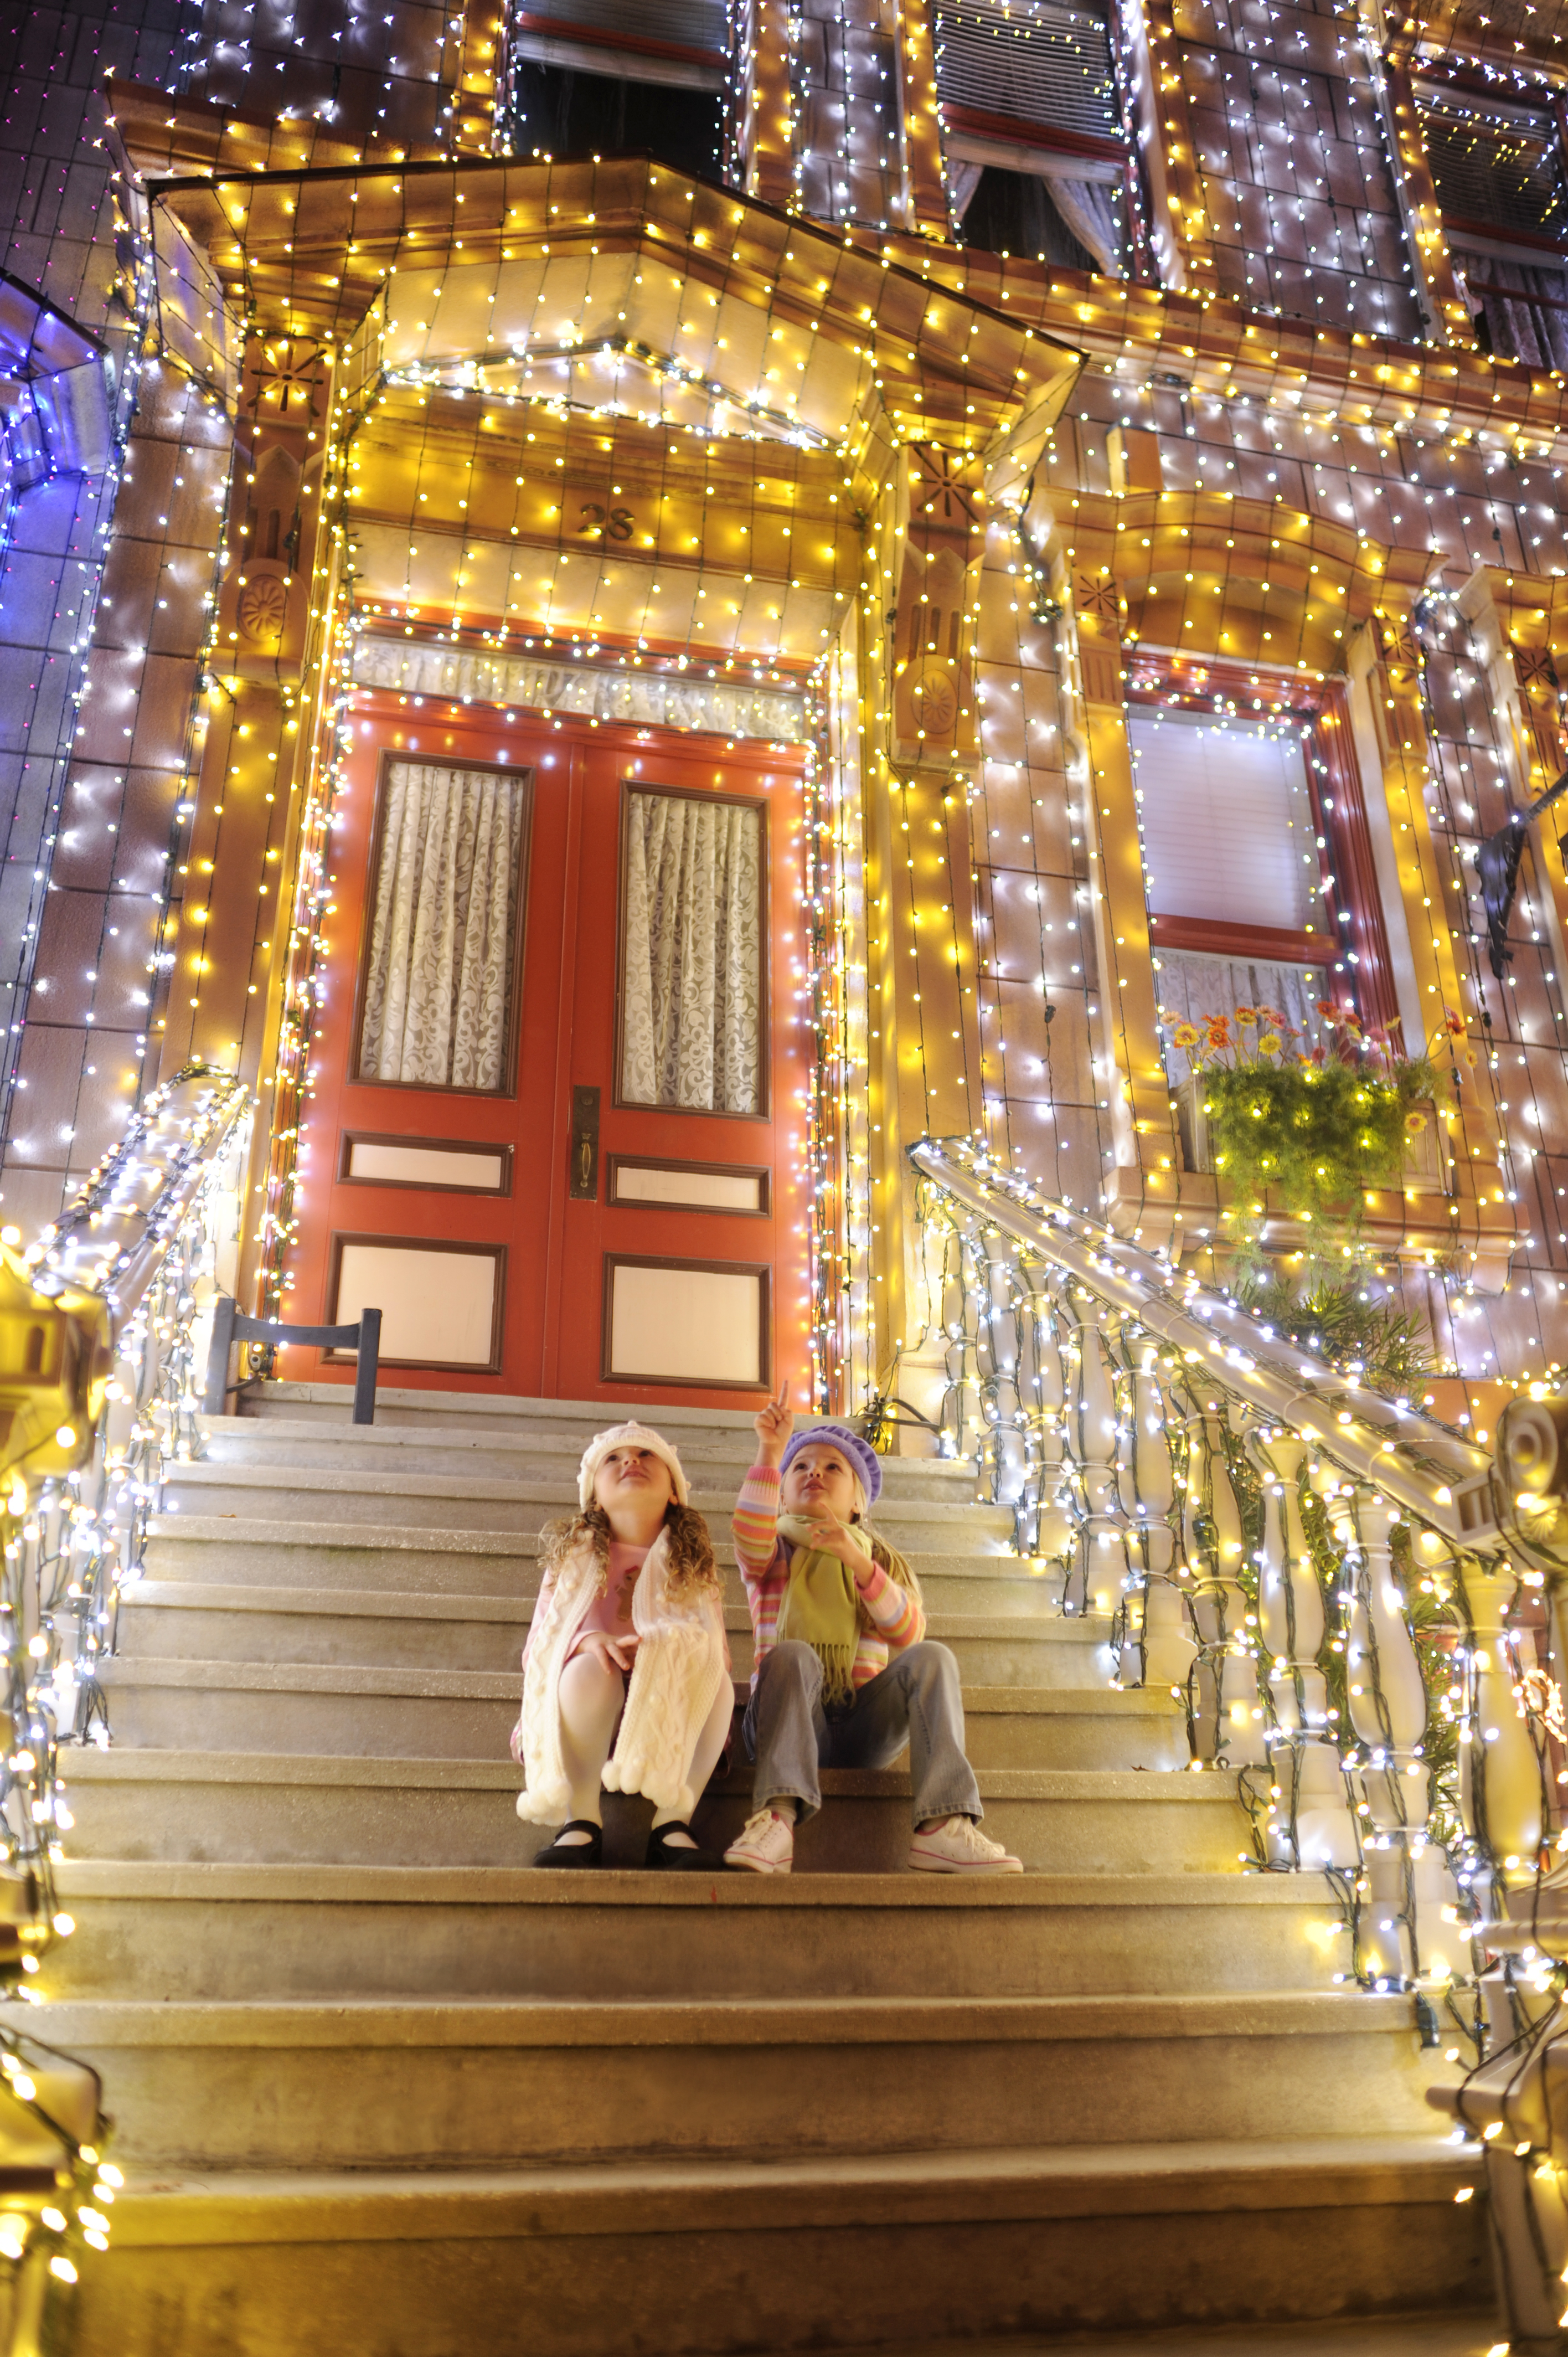 Terrific Tuesdays: Holiday Attractions are Here!  The Osborne Family Spectacle of Dancing Lights